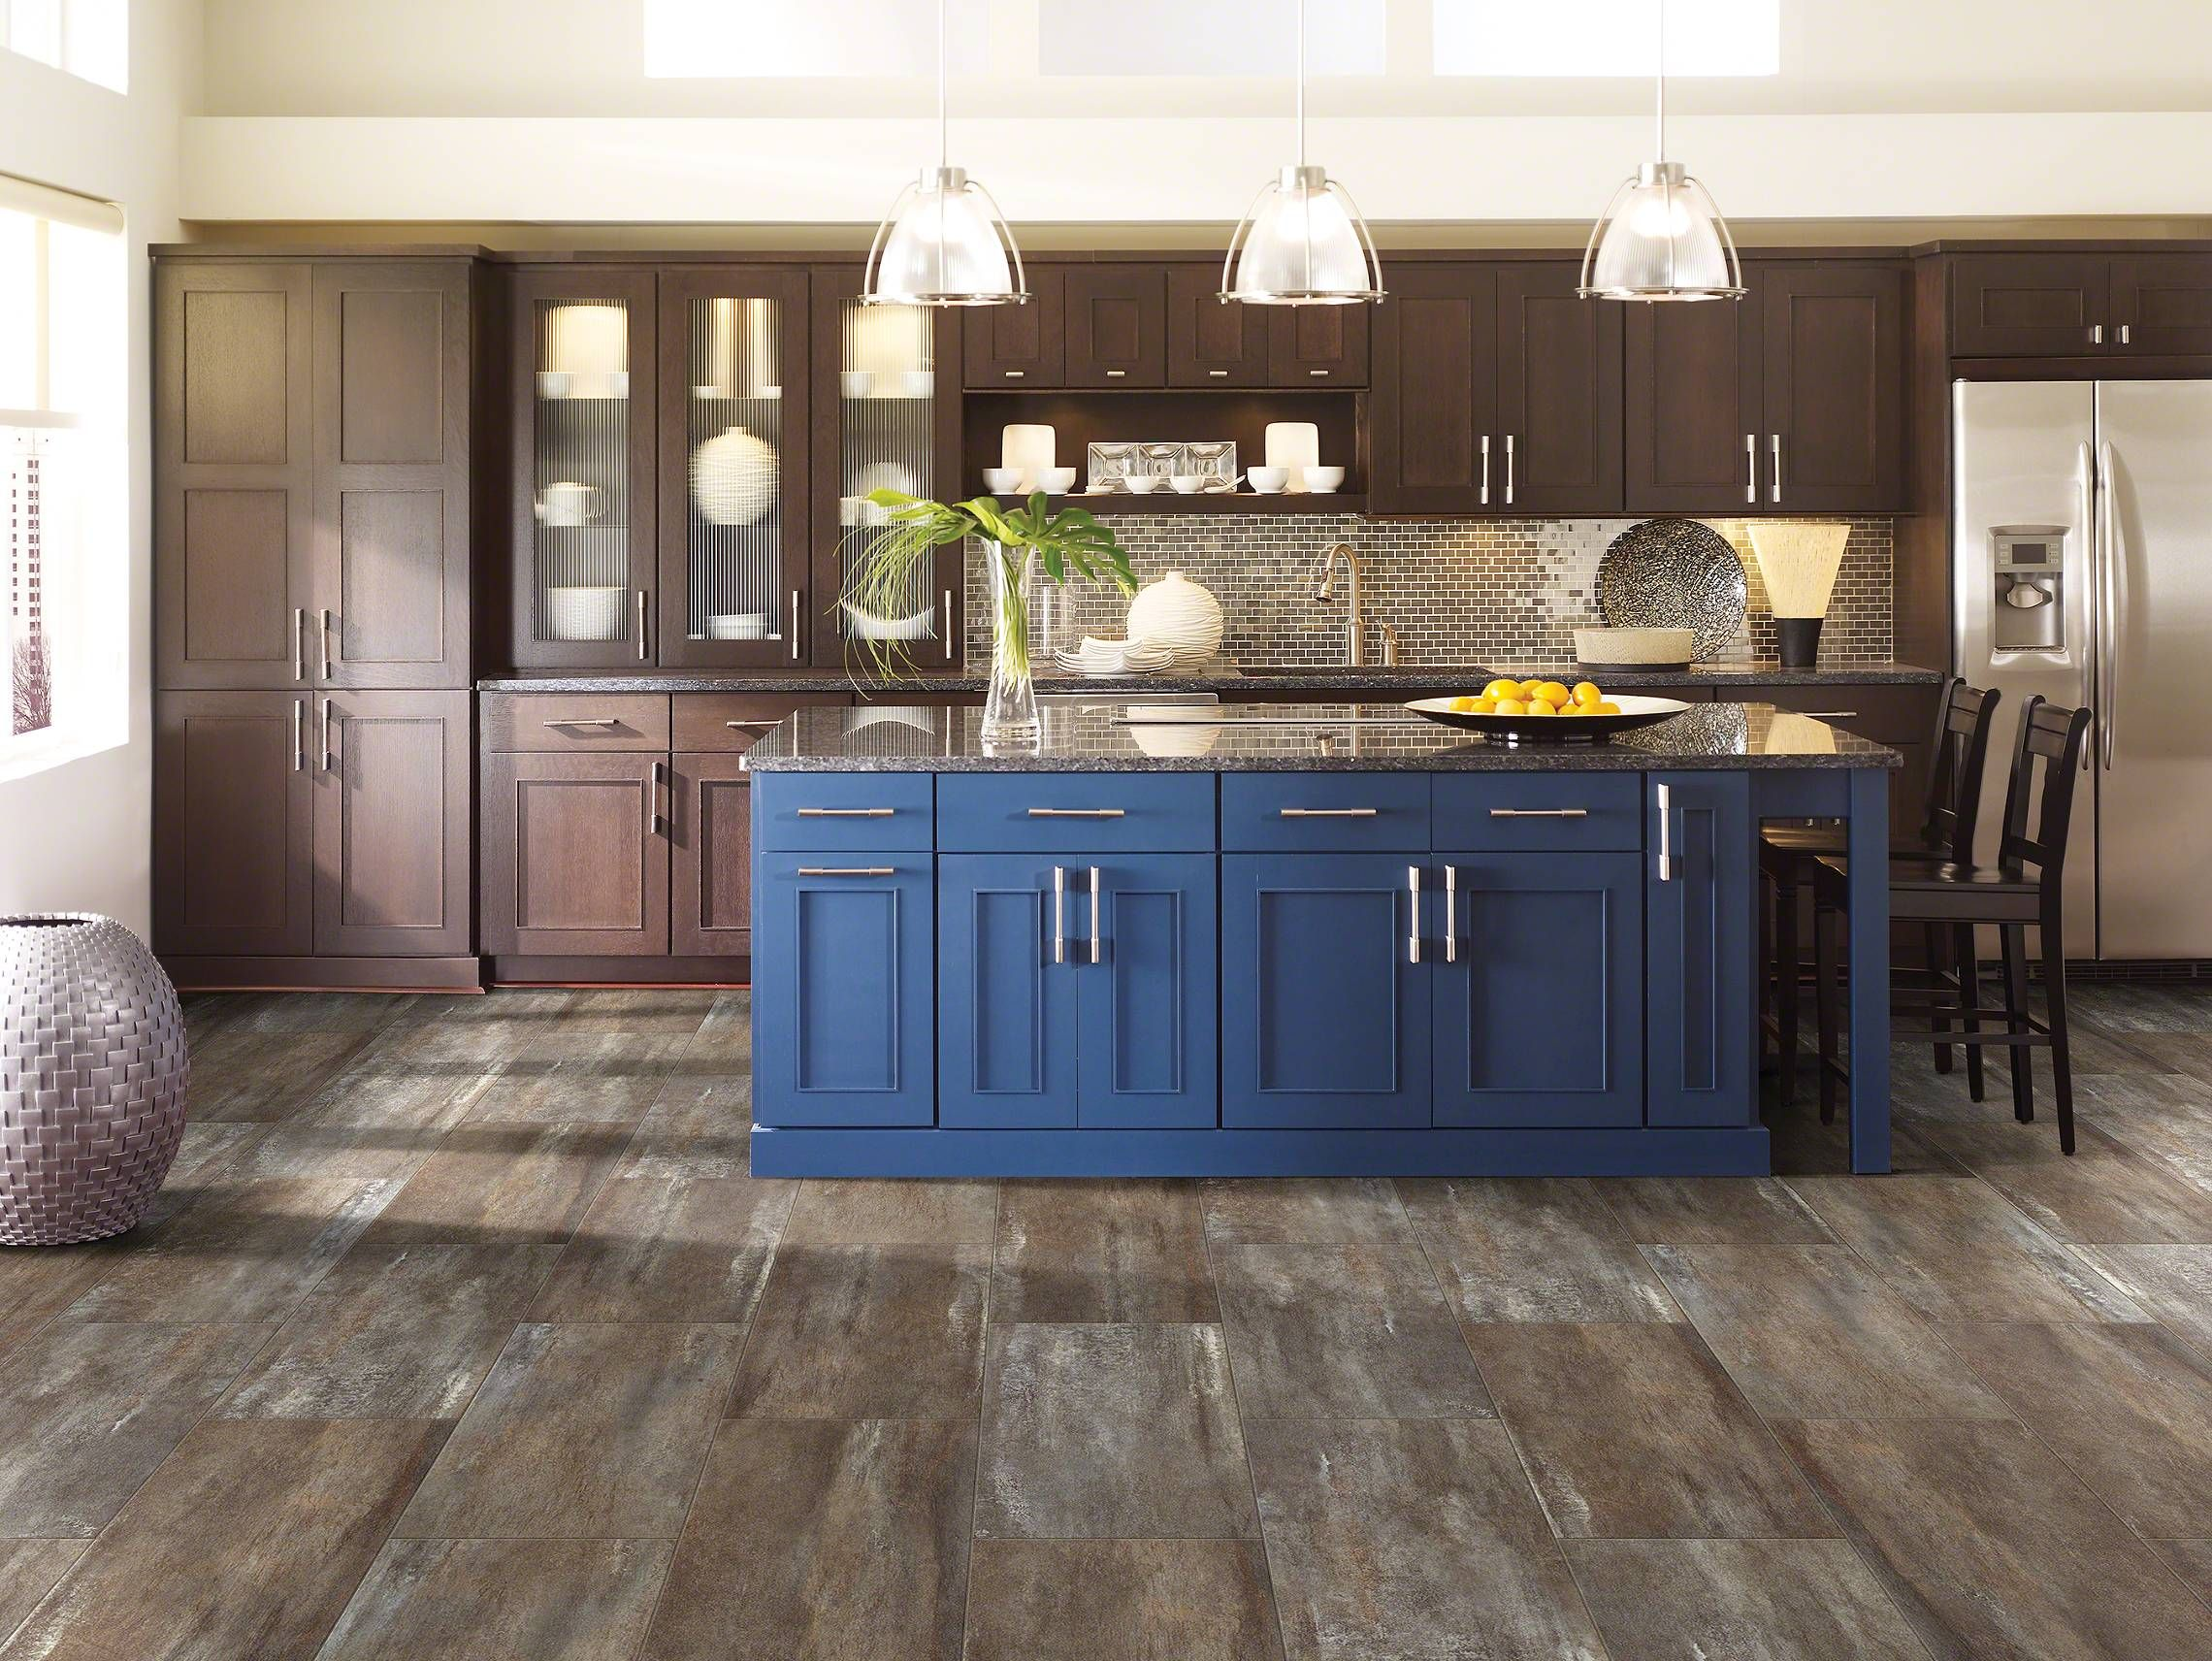 Durable Flooring For Kitchens 31 Best Images About Vinyl On Pinterest Wide Plank Vinyl Planks